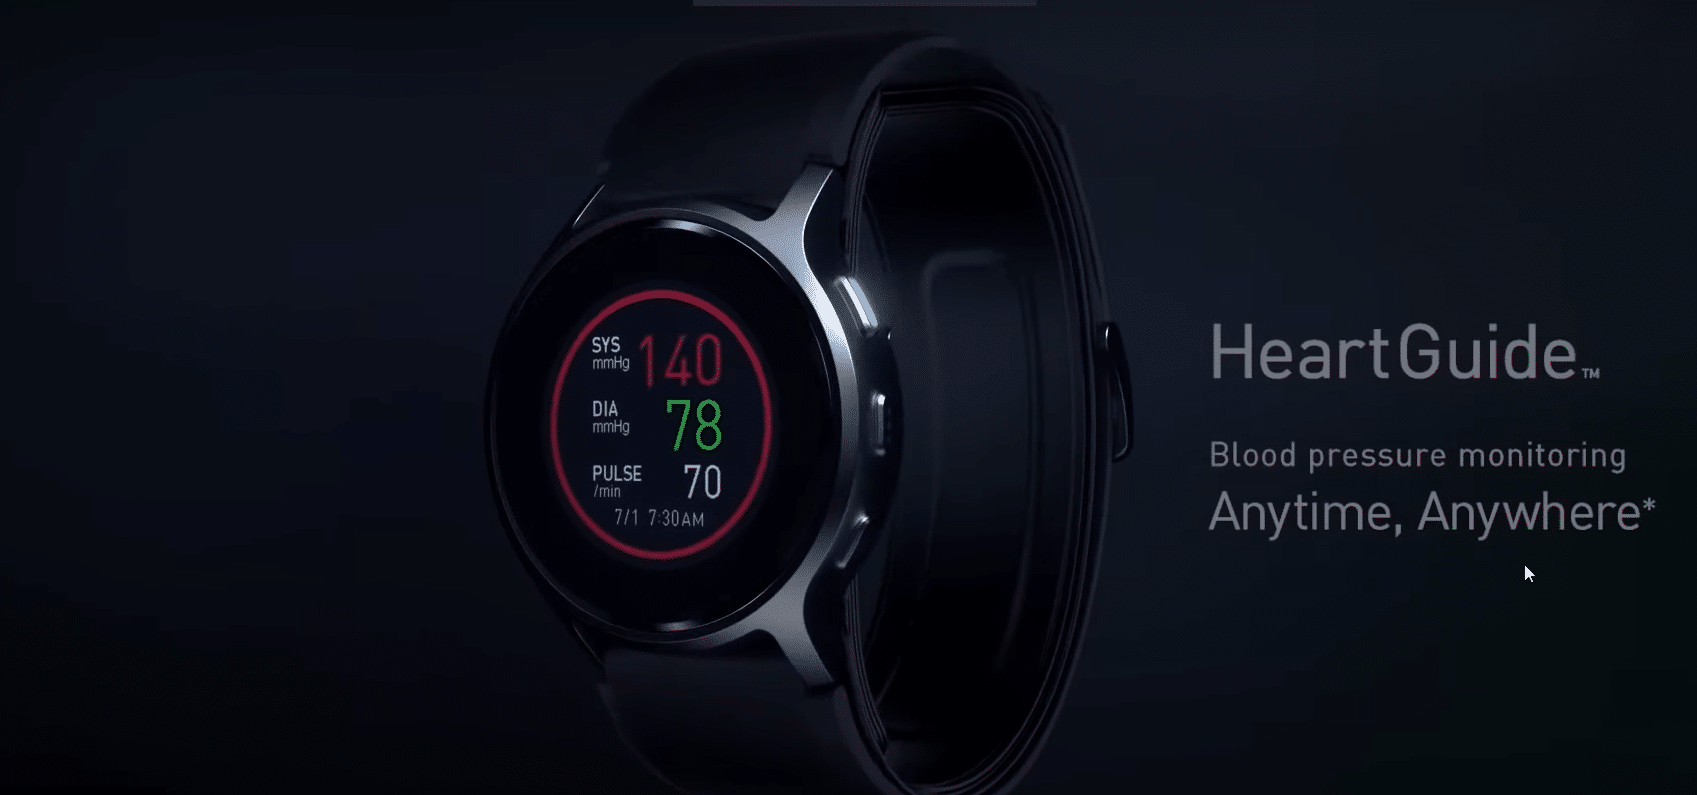 Smartwatches that can measure Blood Pressure